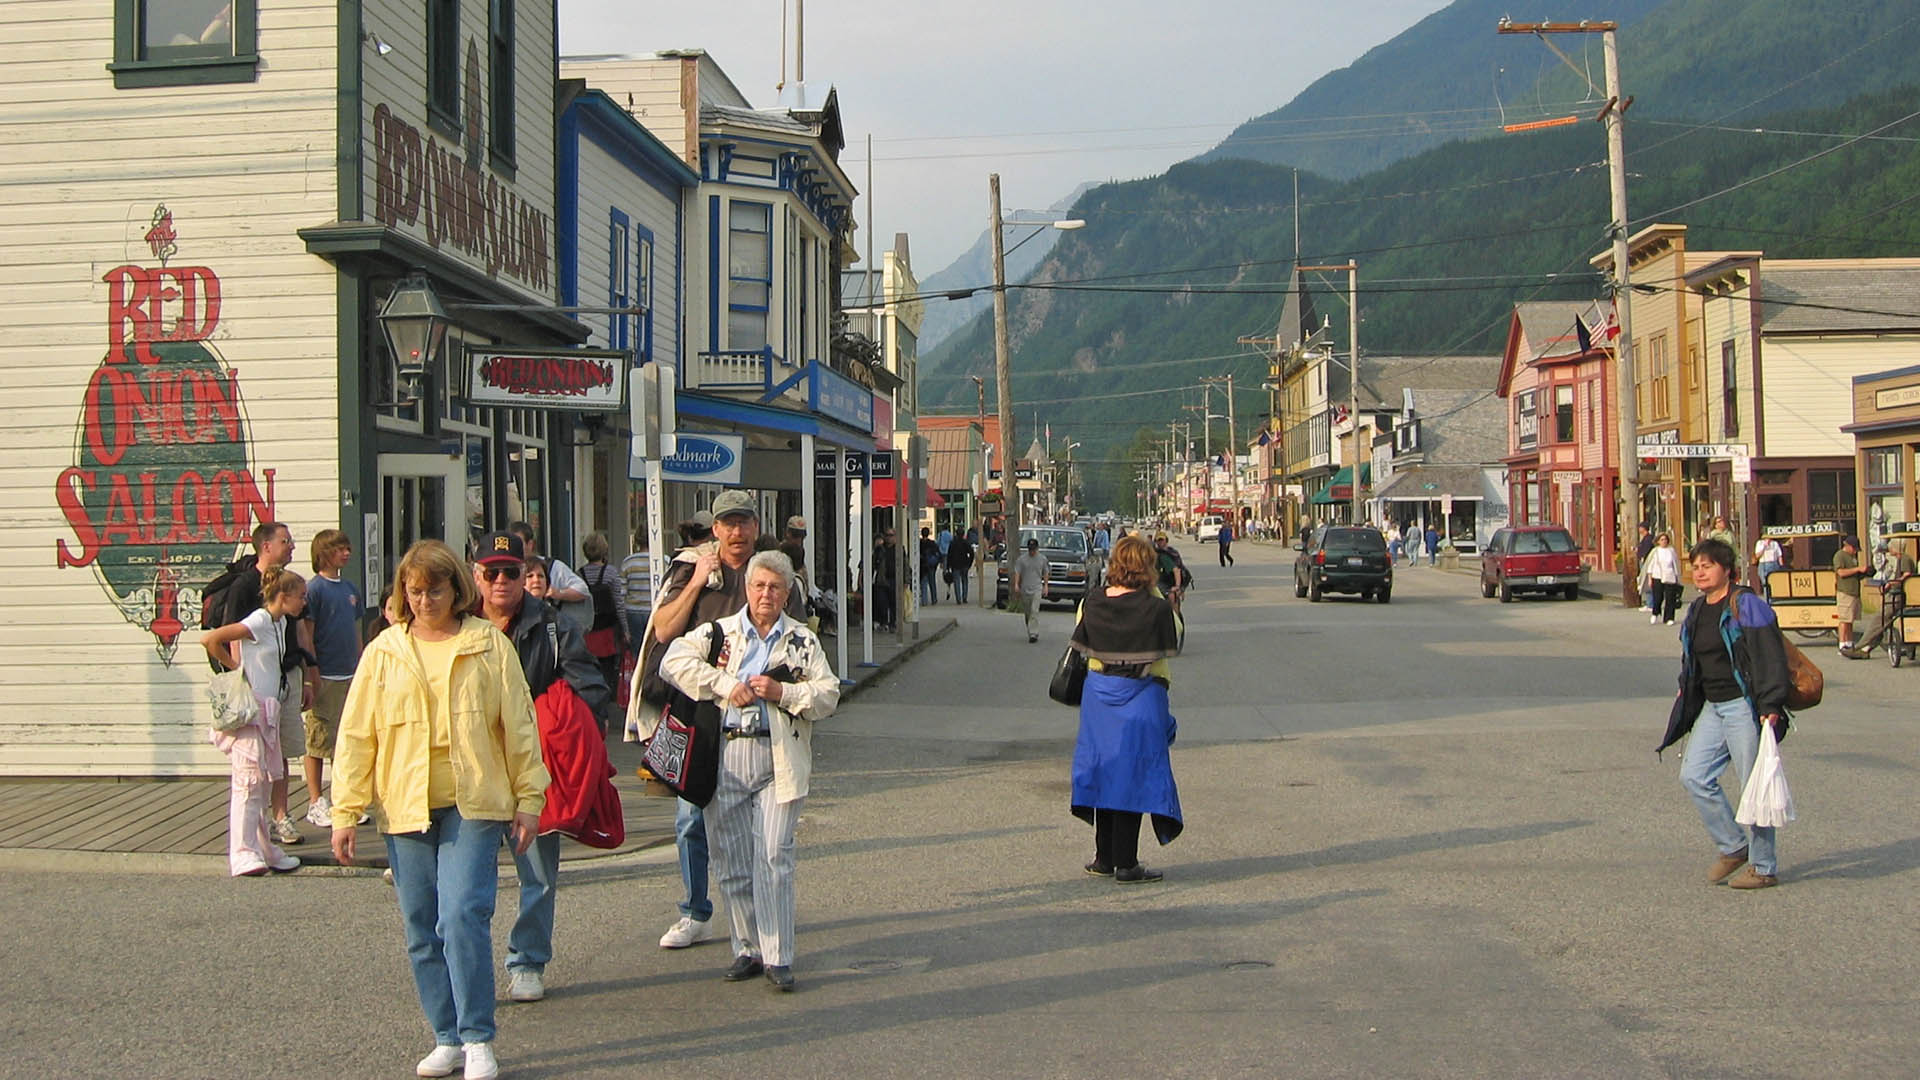 Downtown Skagway, AK